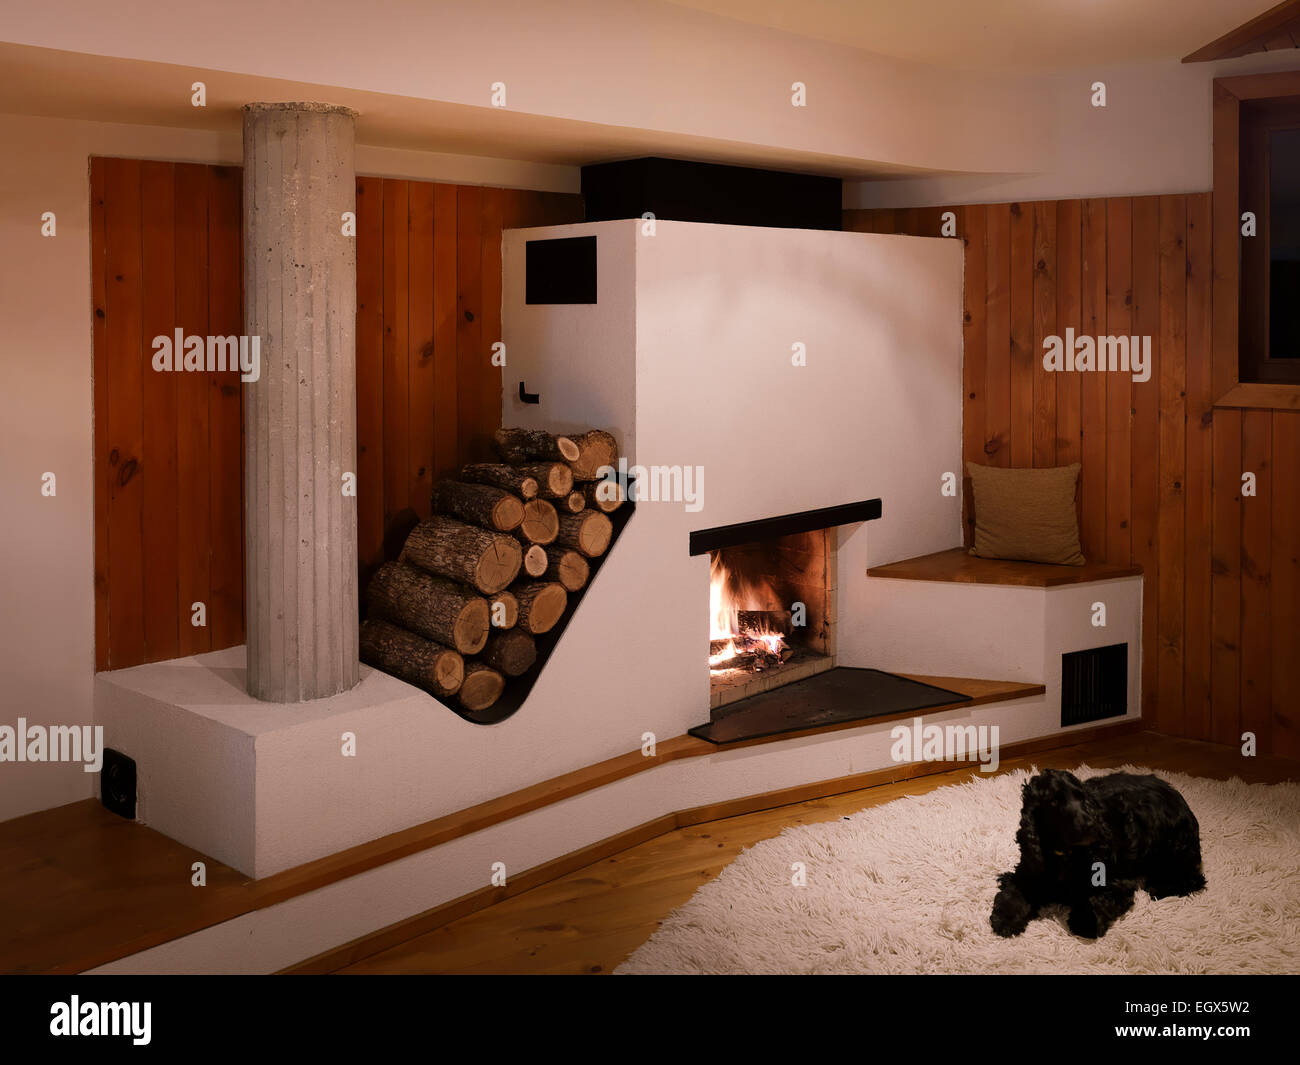 Fireplace With Log Storage In Wood Panelled Living Room, UK Home